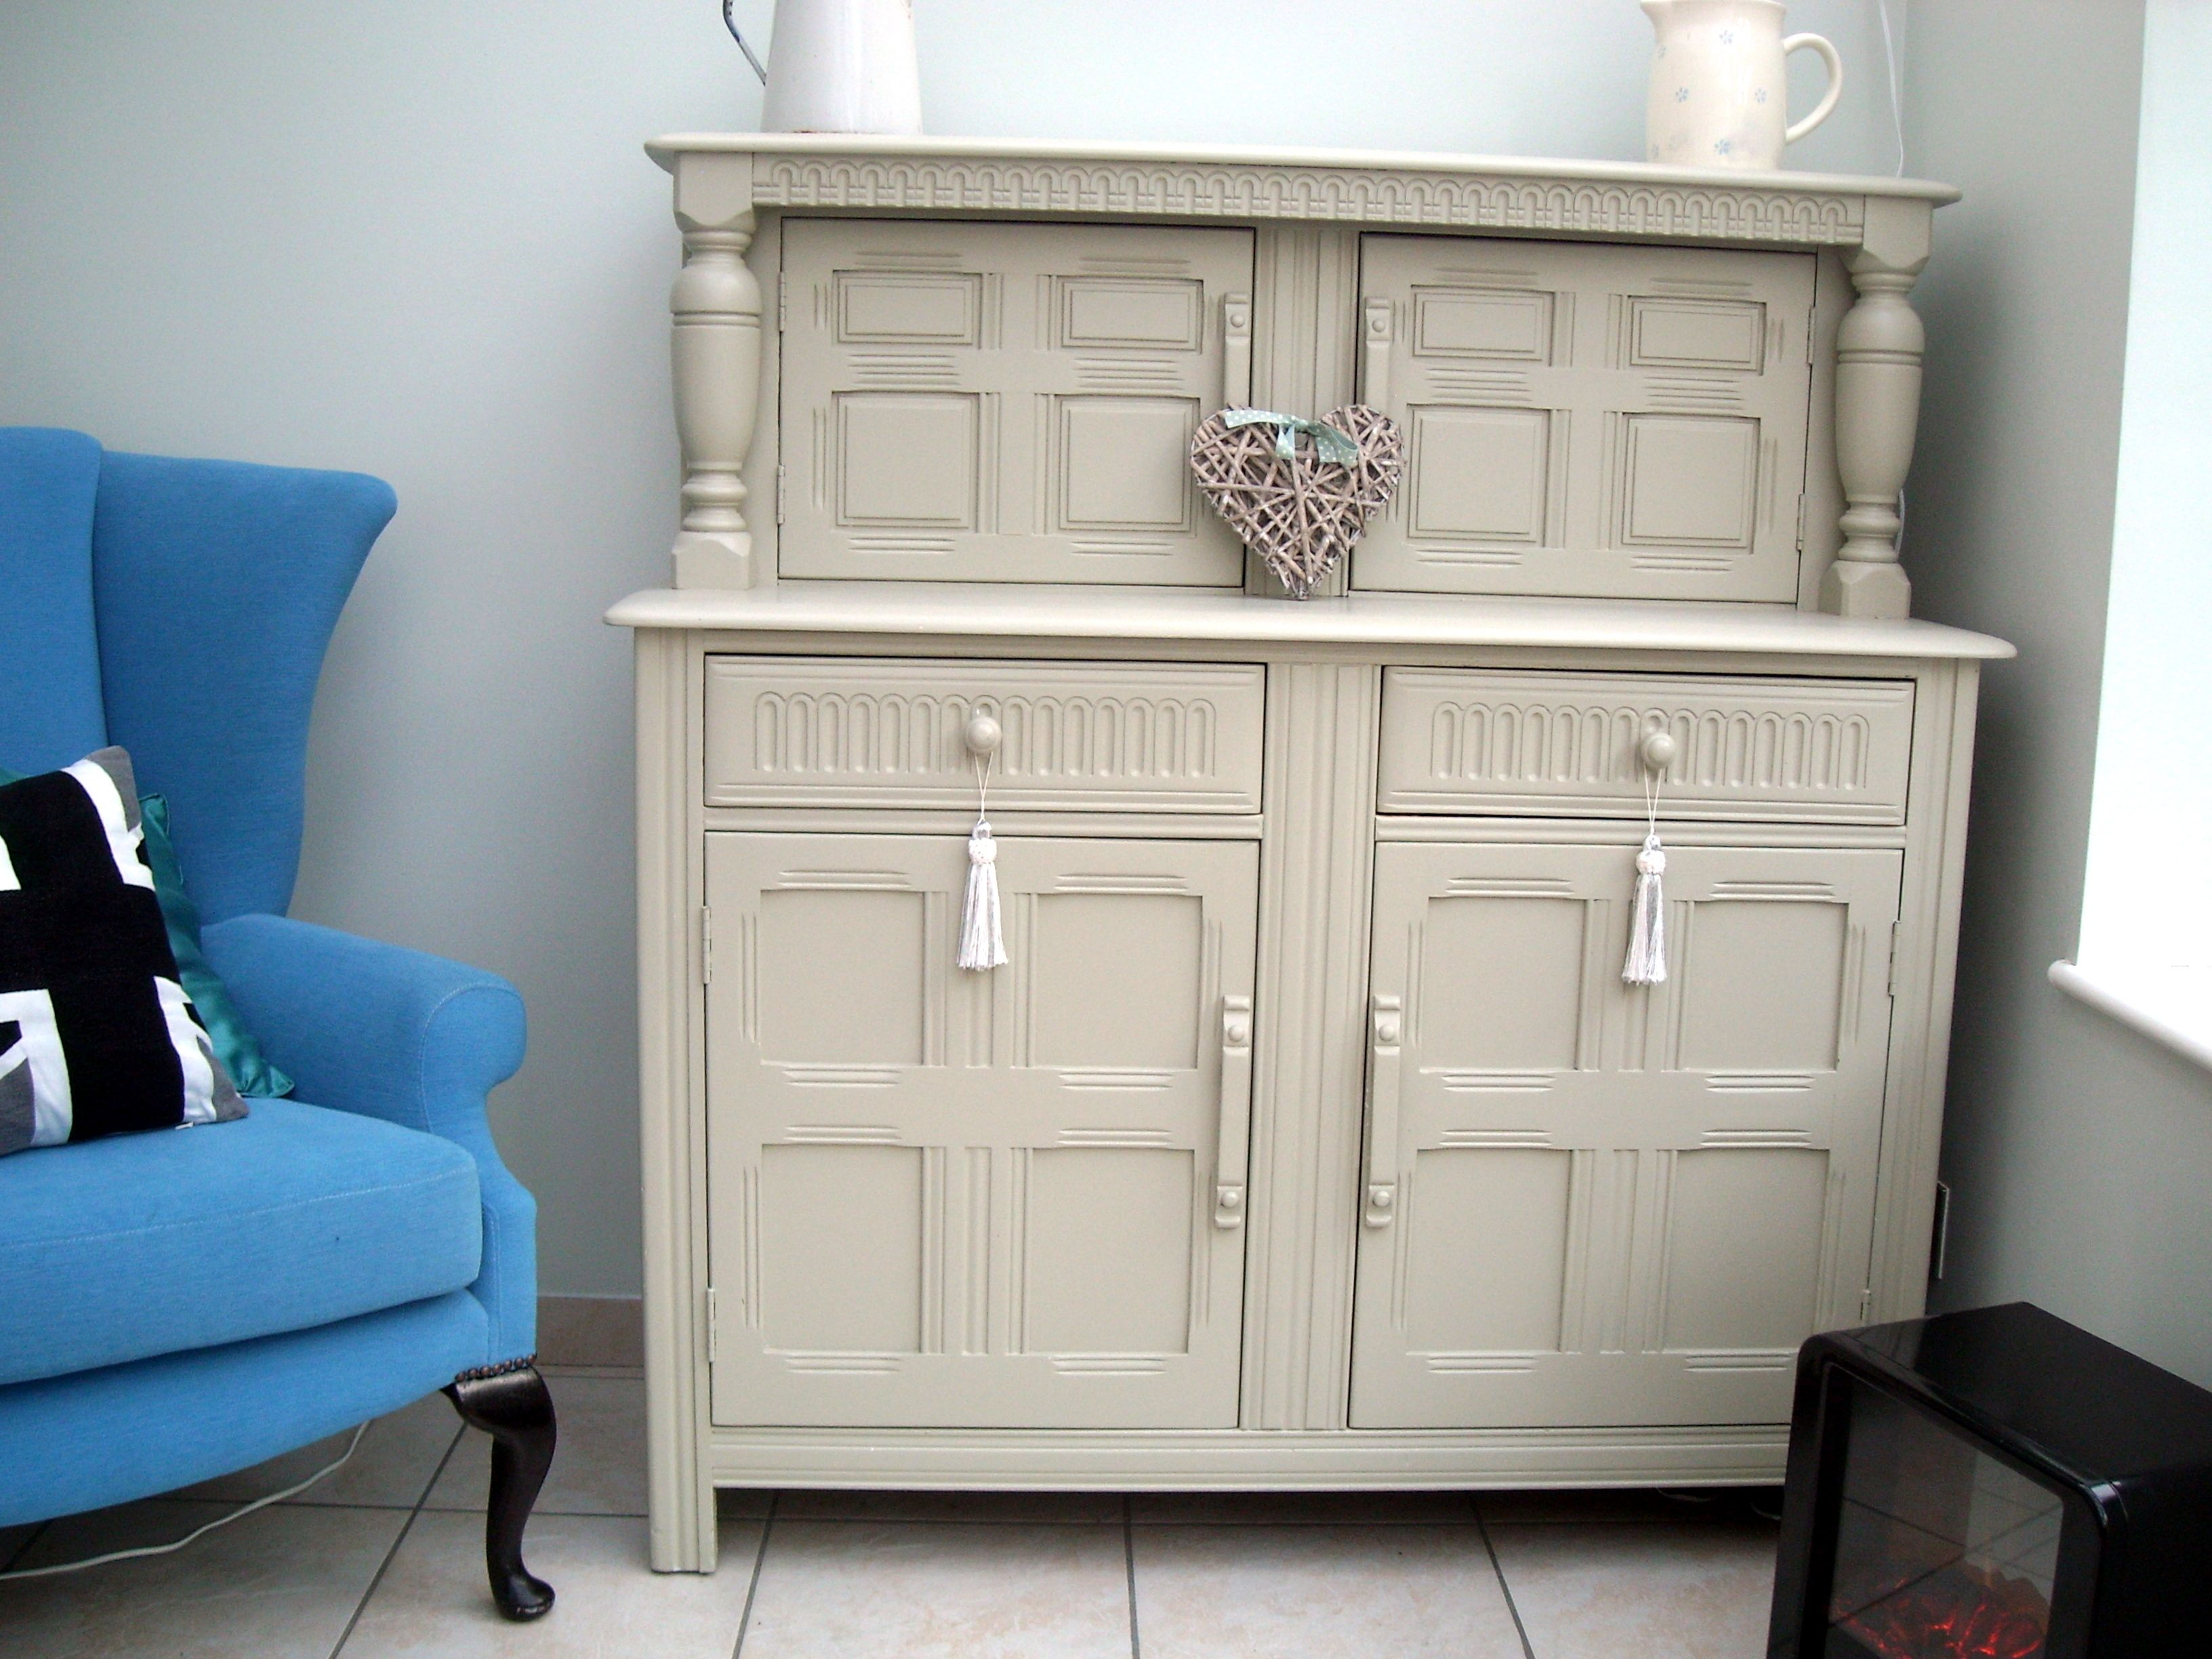 Old dresser I painted with Farrow and